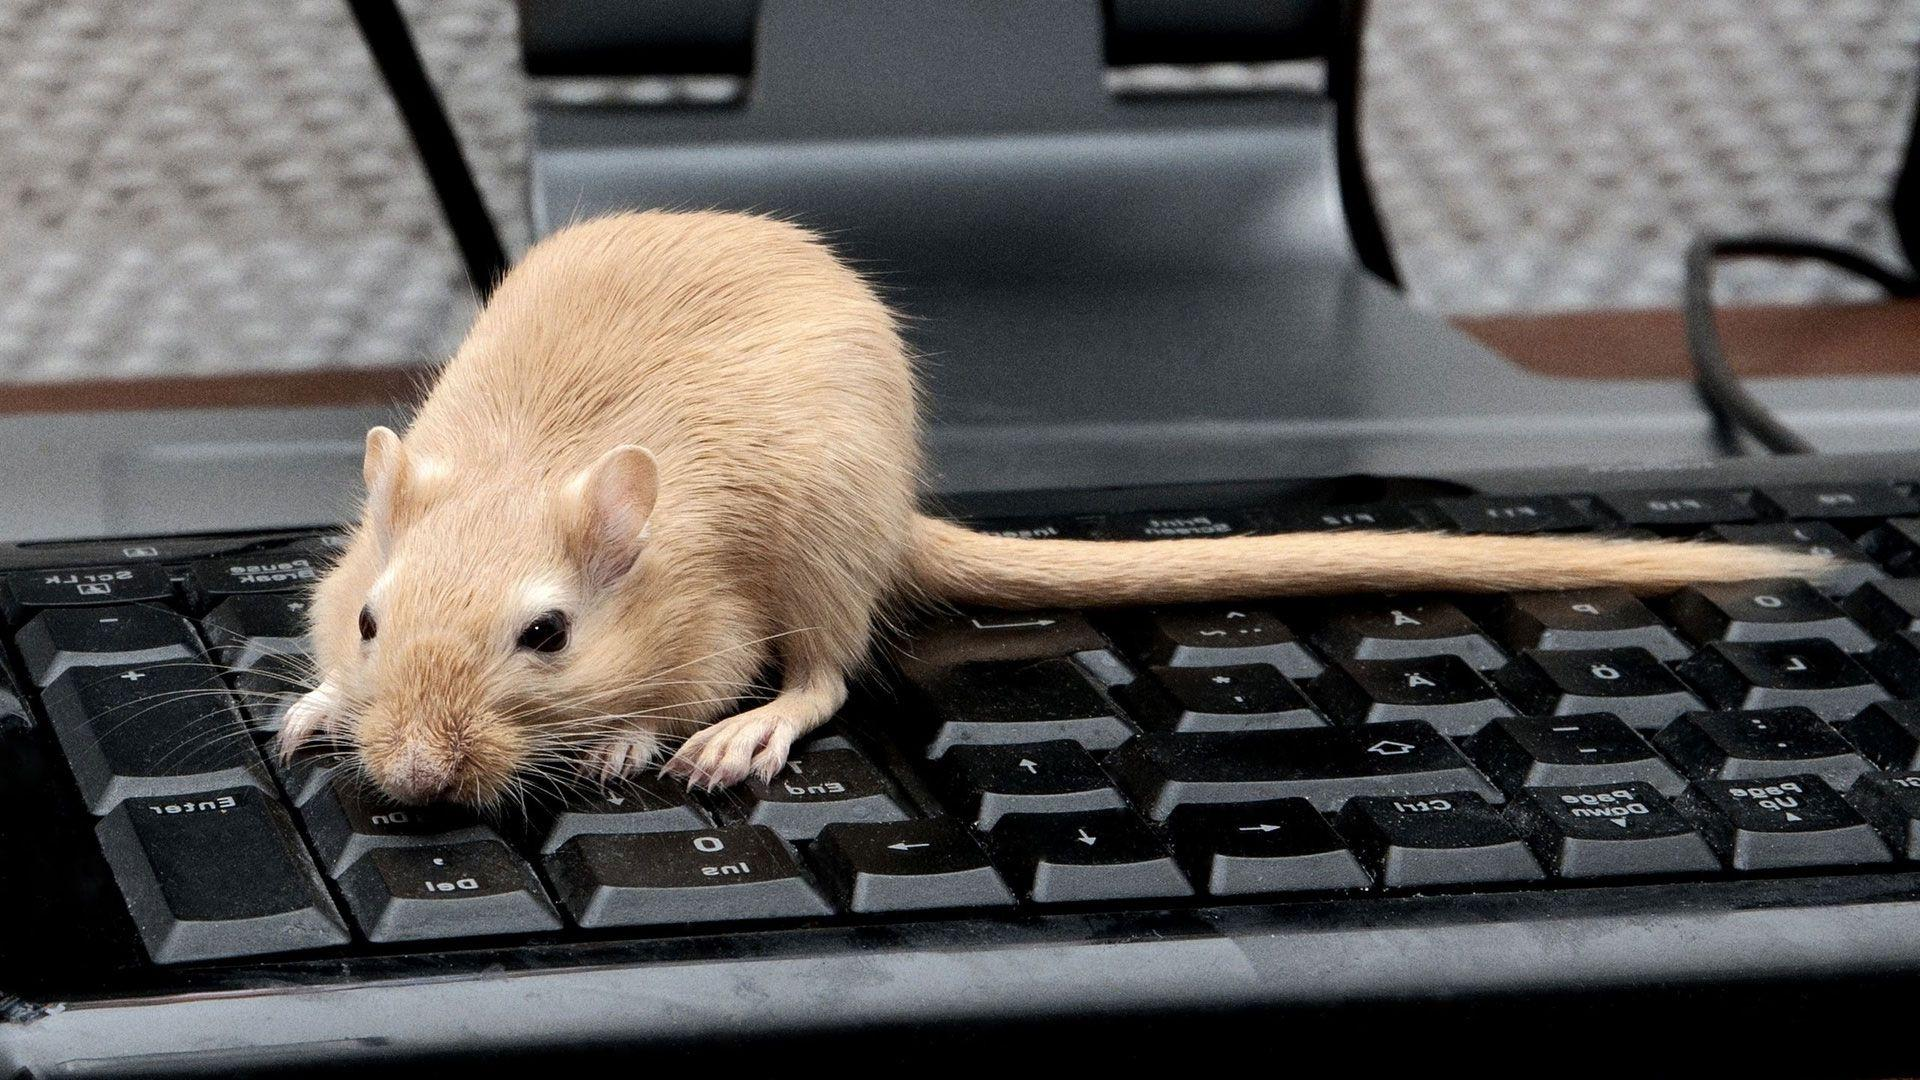 Download Wallpaper 1920x1080 Keyboard, Tail, Gerbil Full HD 1080p ...